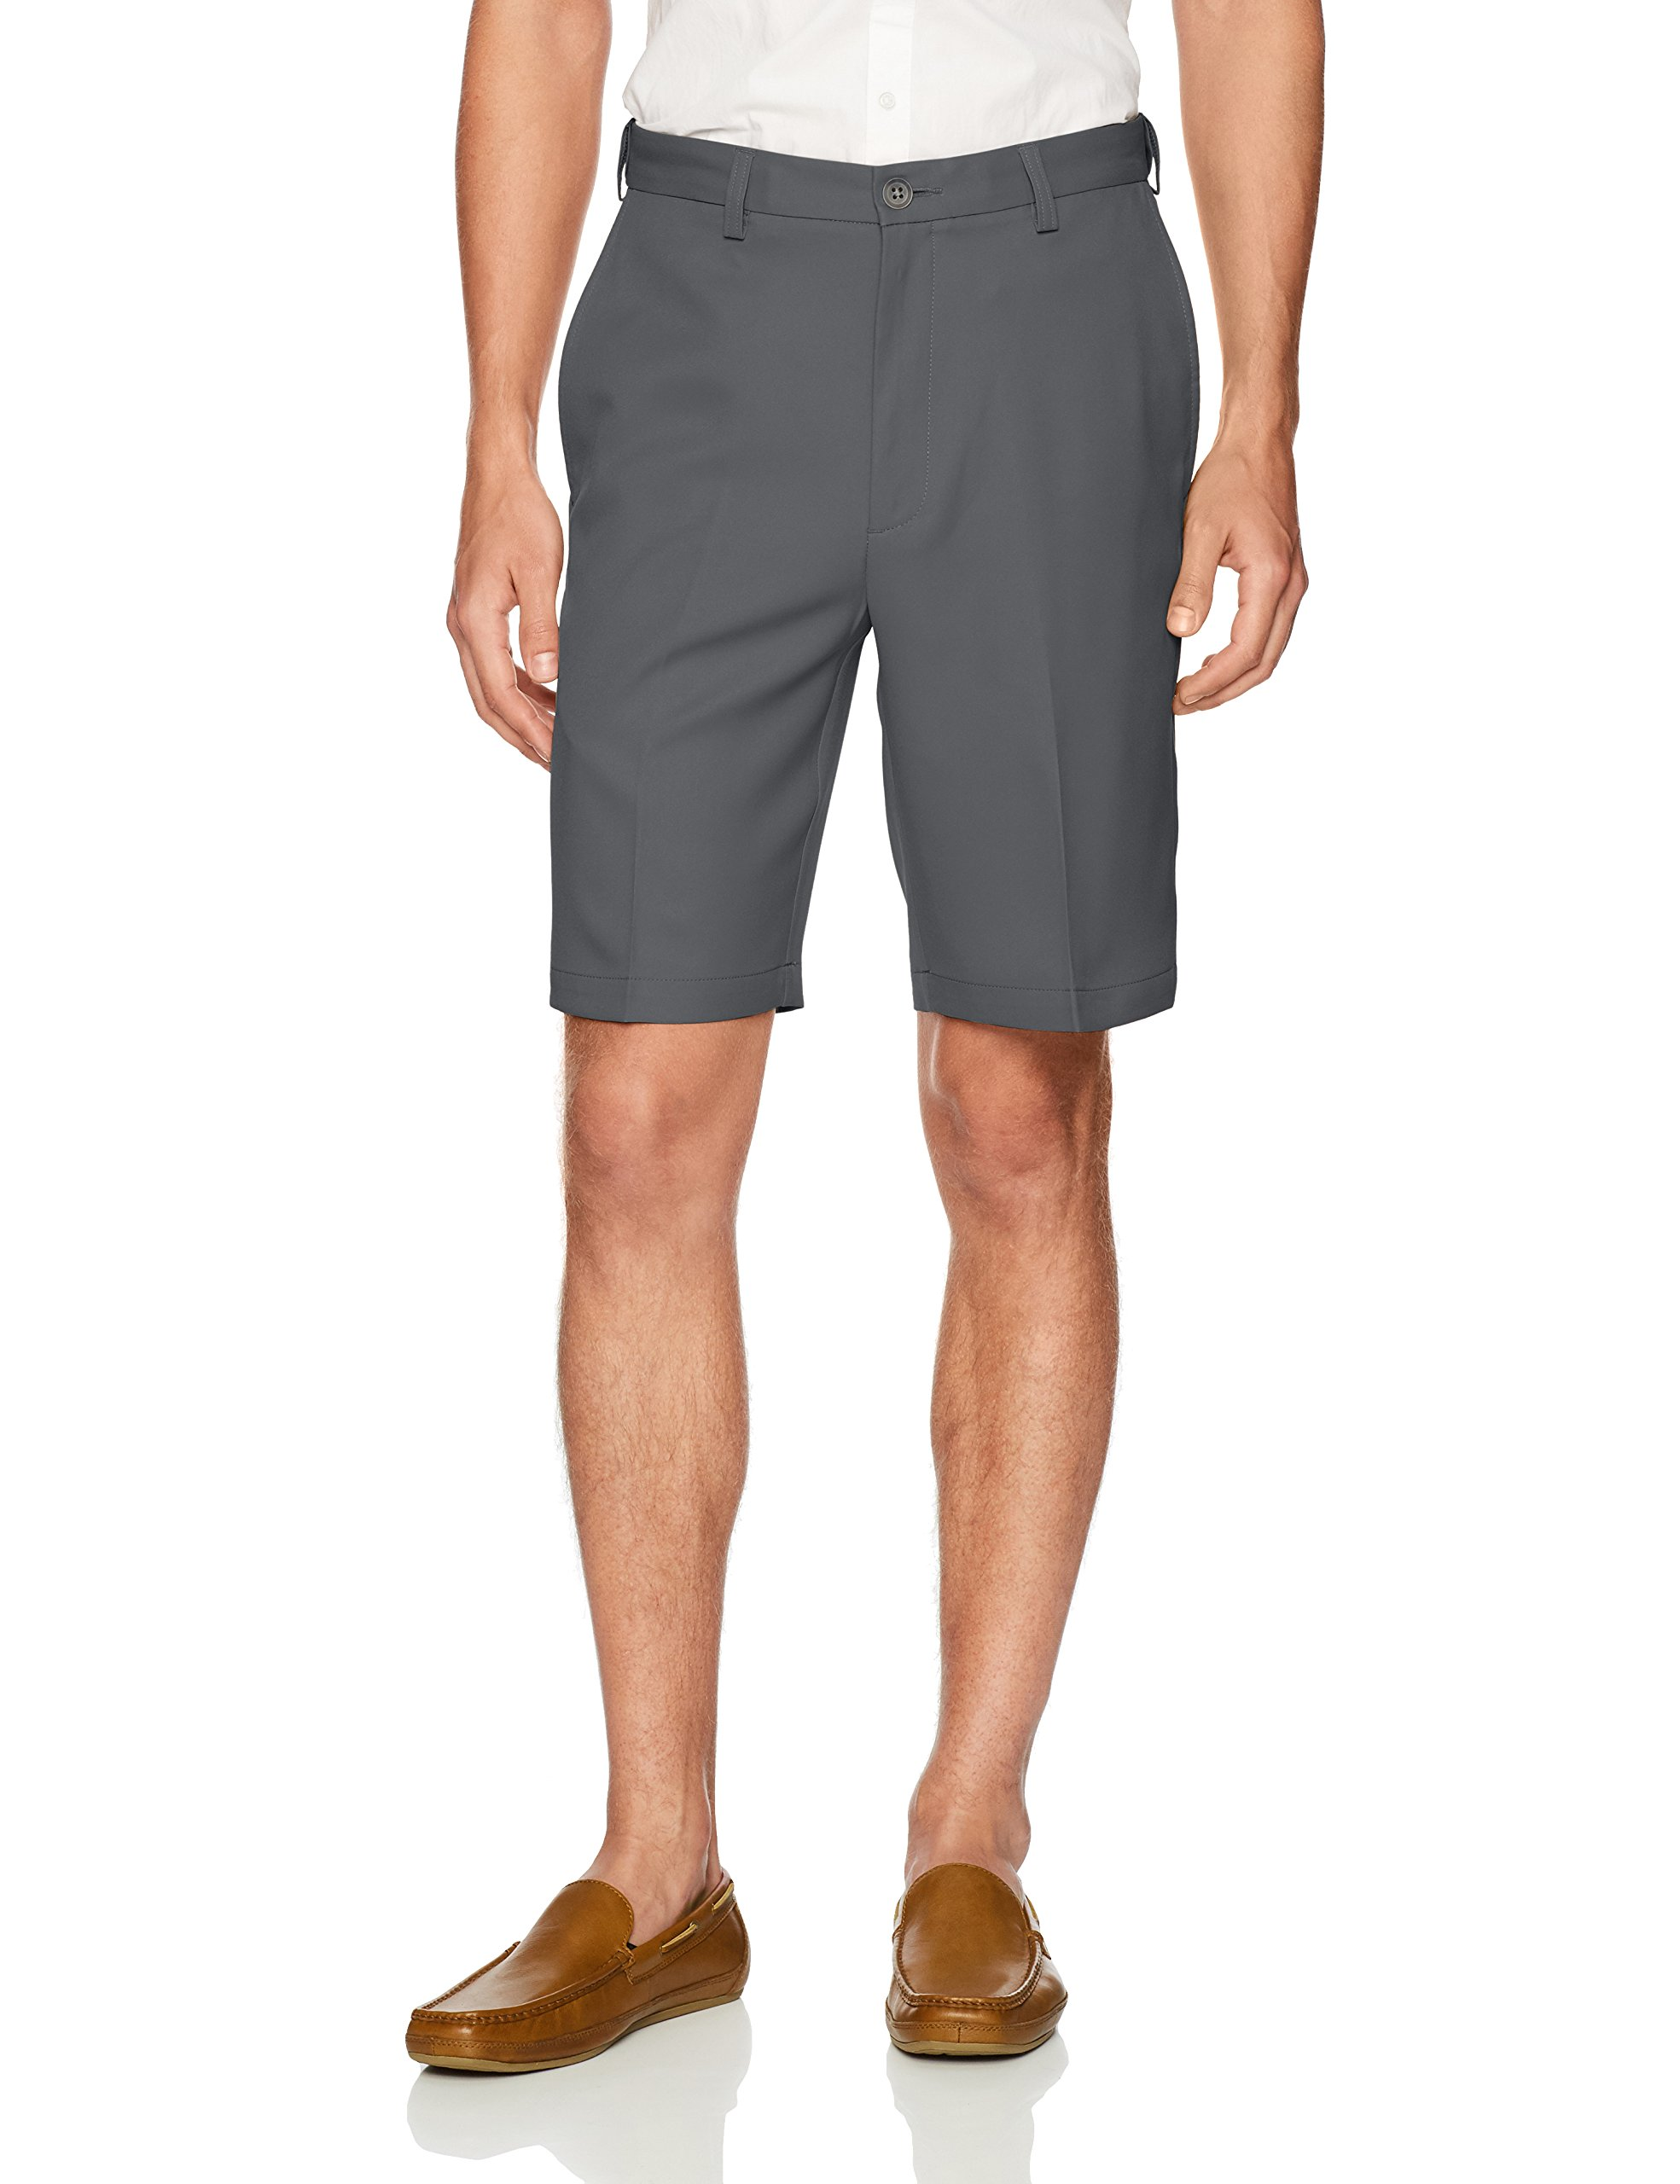 Haggar Men's Cool 18 Pro Straight Fit Stretch Solid Flat Front Short, Grey, 38